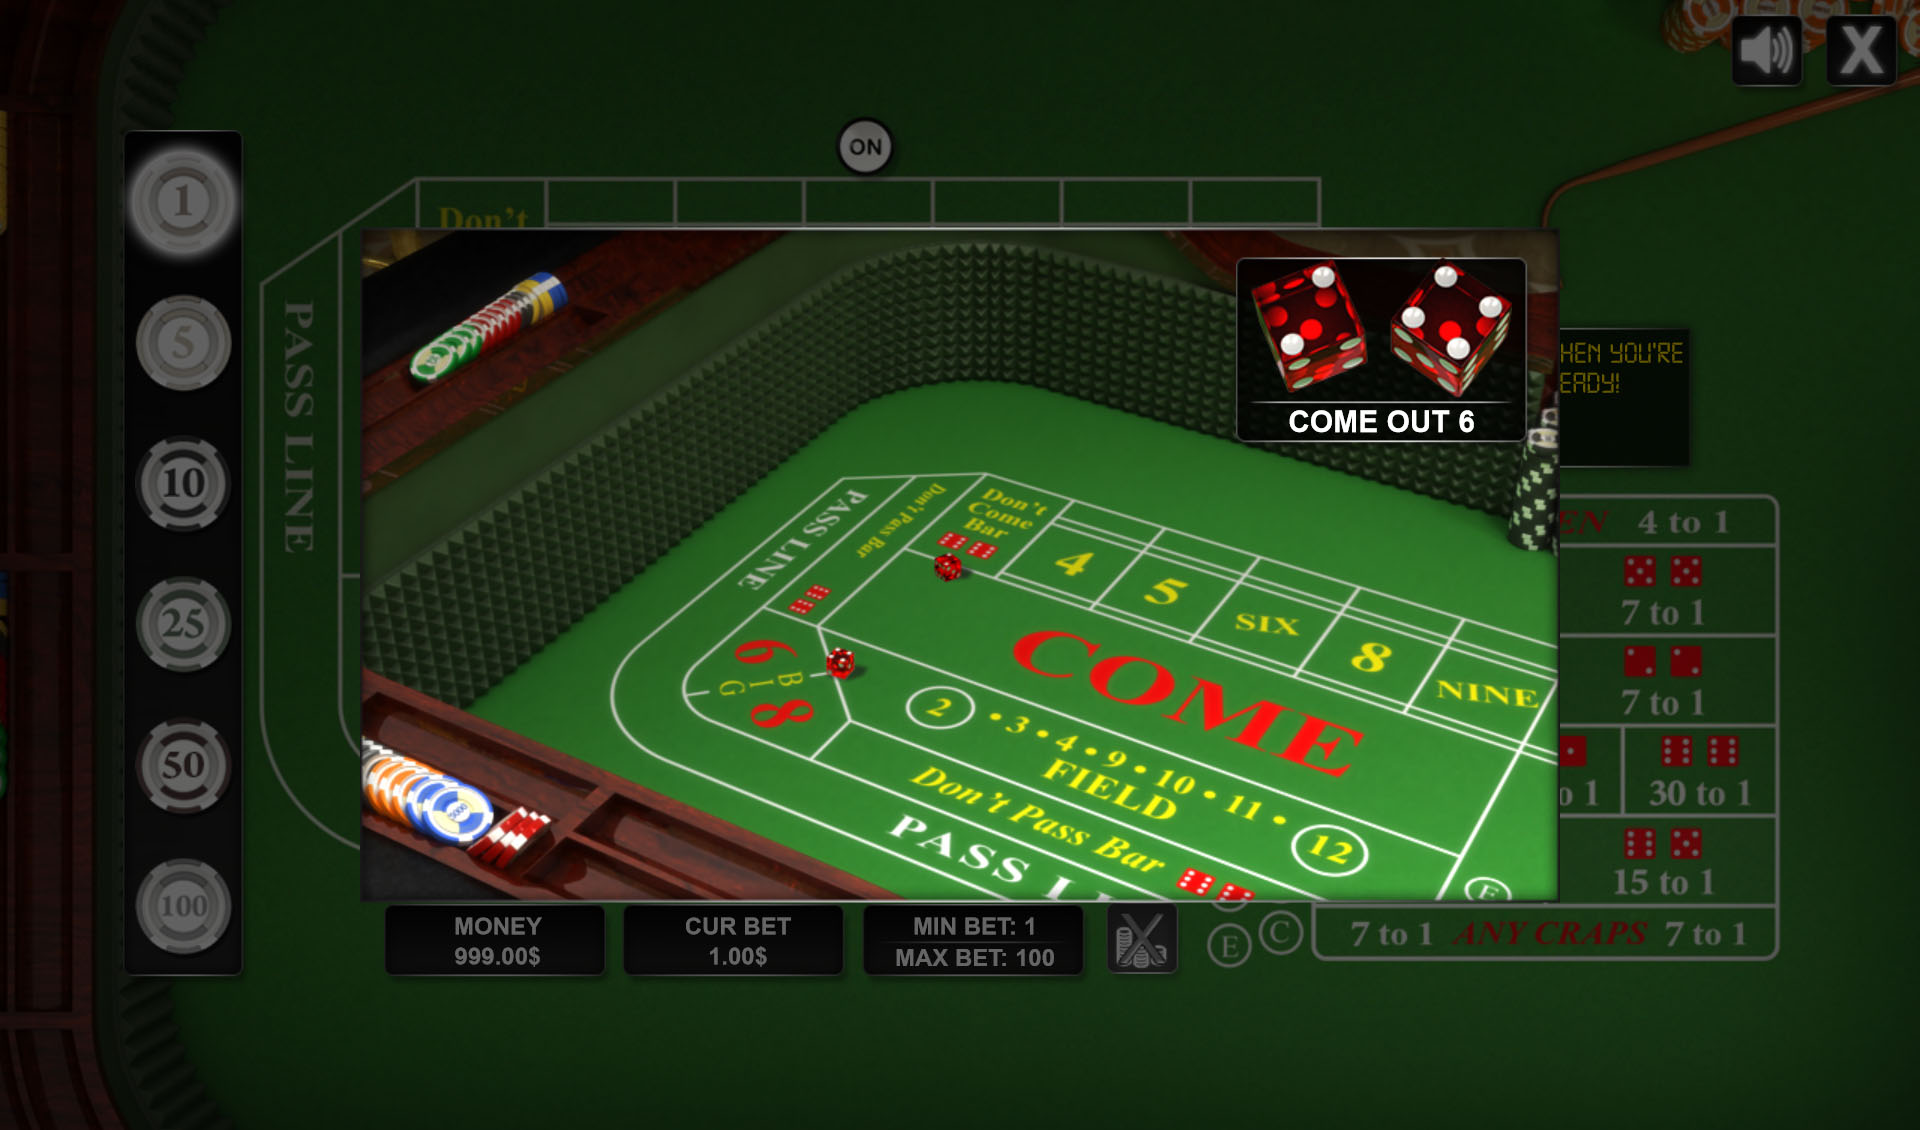 Gibraltar government gambling license